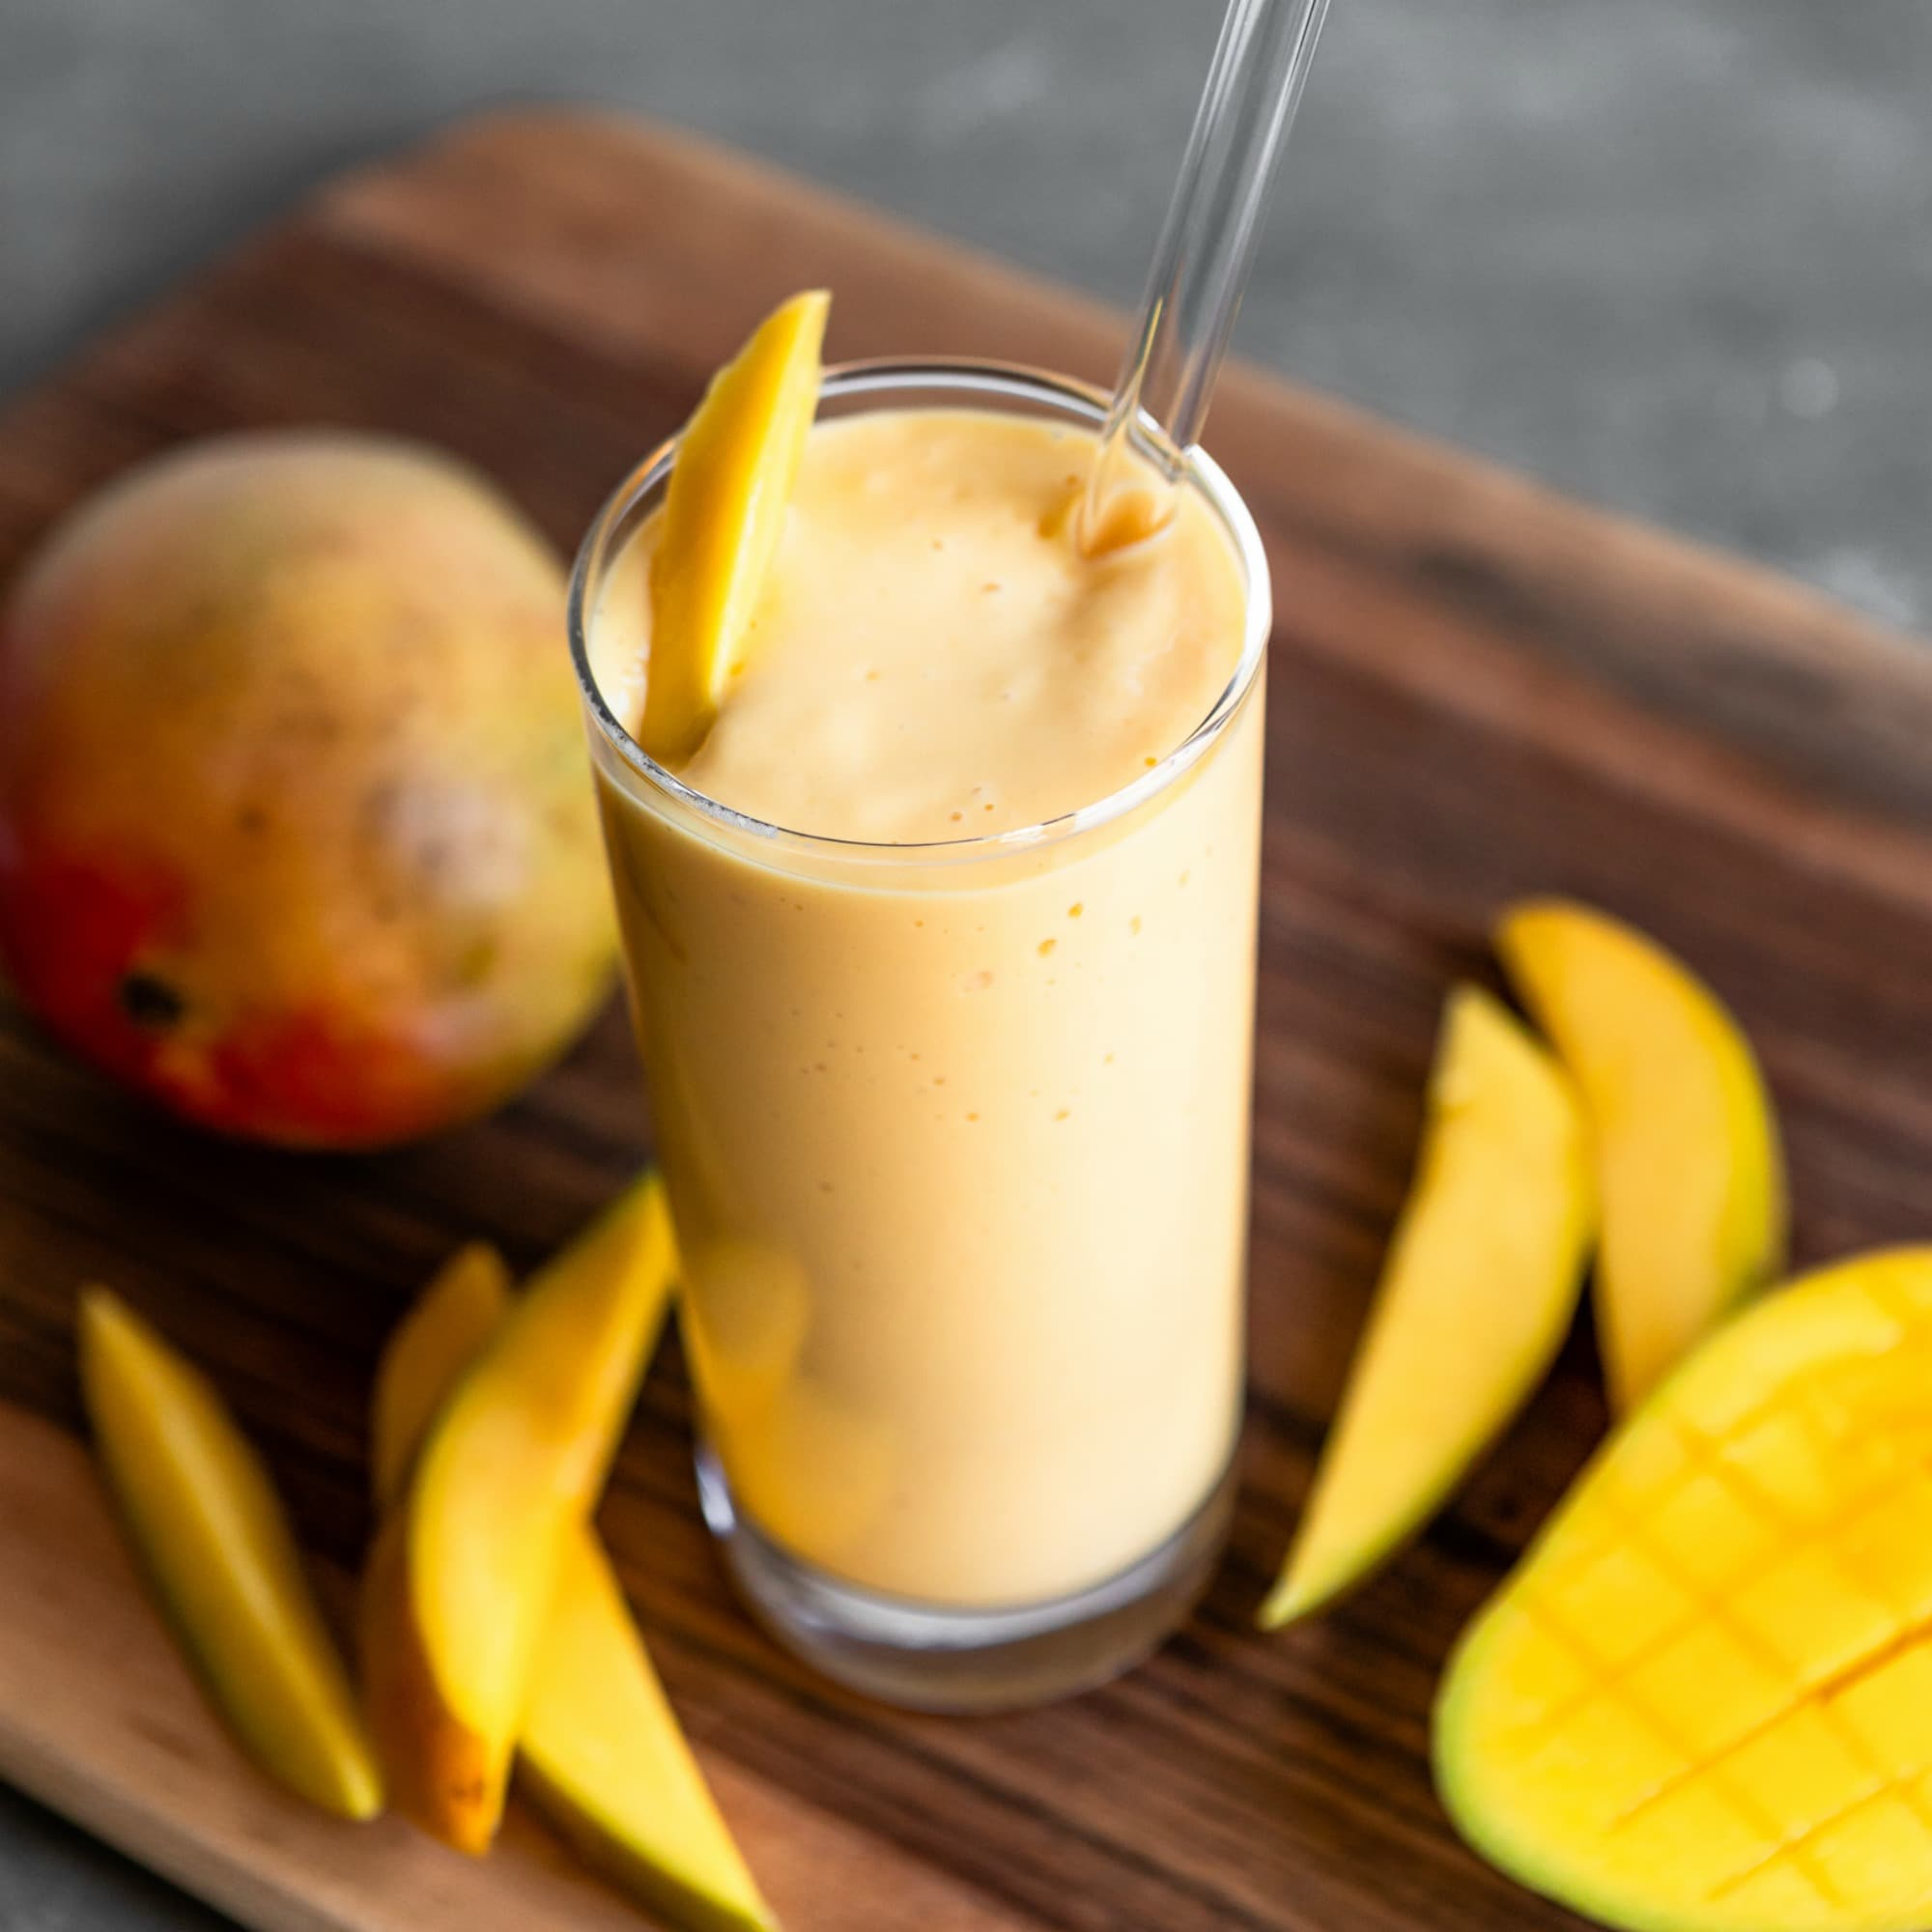 A tasty and refreshing way to start your day off right, this Tropical Mango Smoothie is made with only five ingredients and is ready in just a few minutes. Feel free to replace the mango with any one of your favorite tropical fruits such as pineapple, banana, or papaya. Or go crazy and mix them all into one!